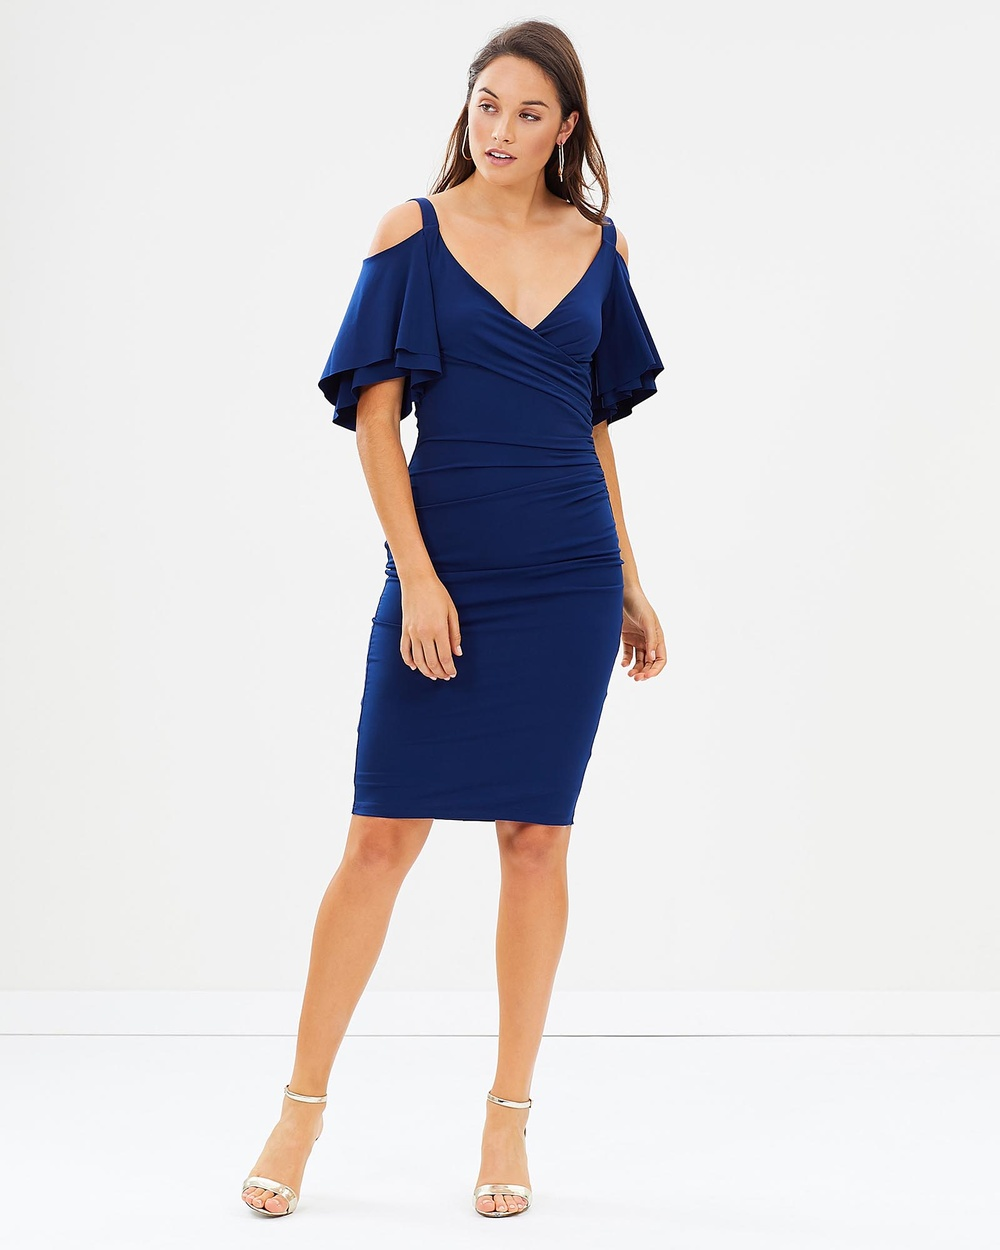 Montique Alexis Dress Bodycon Dresses Sapphire Alexis Dress